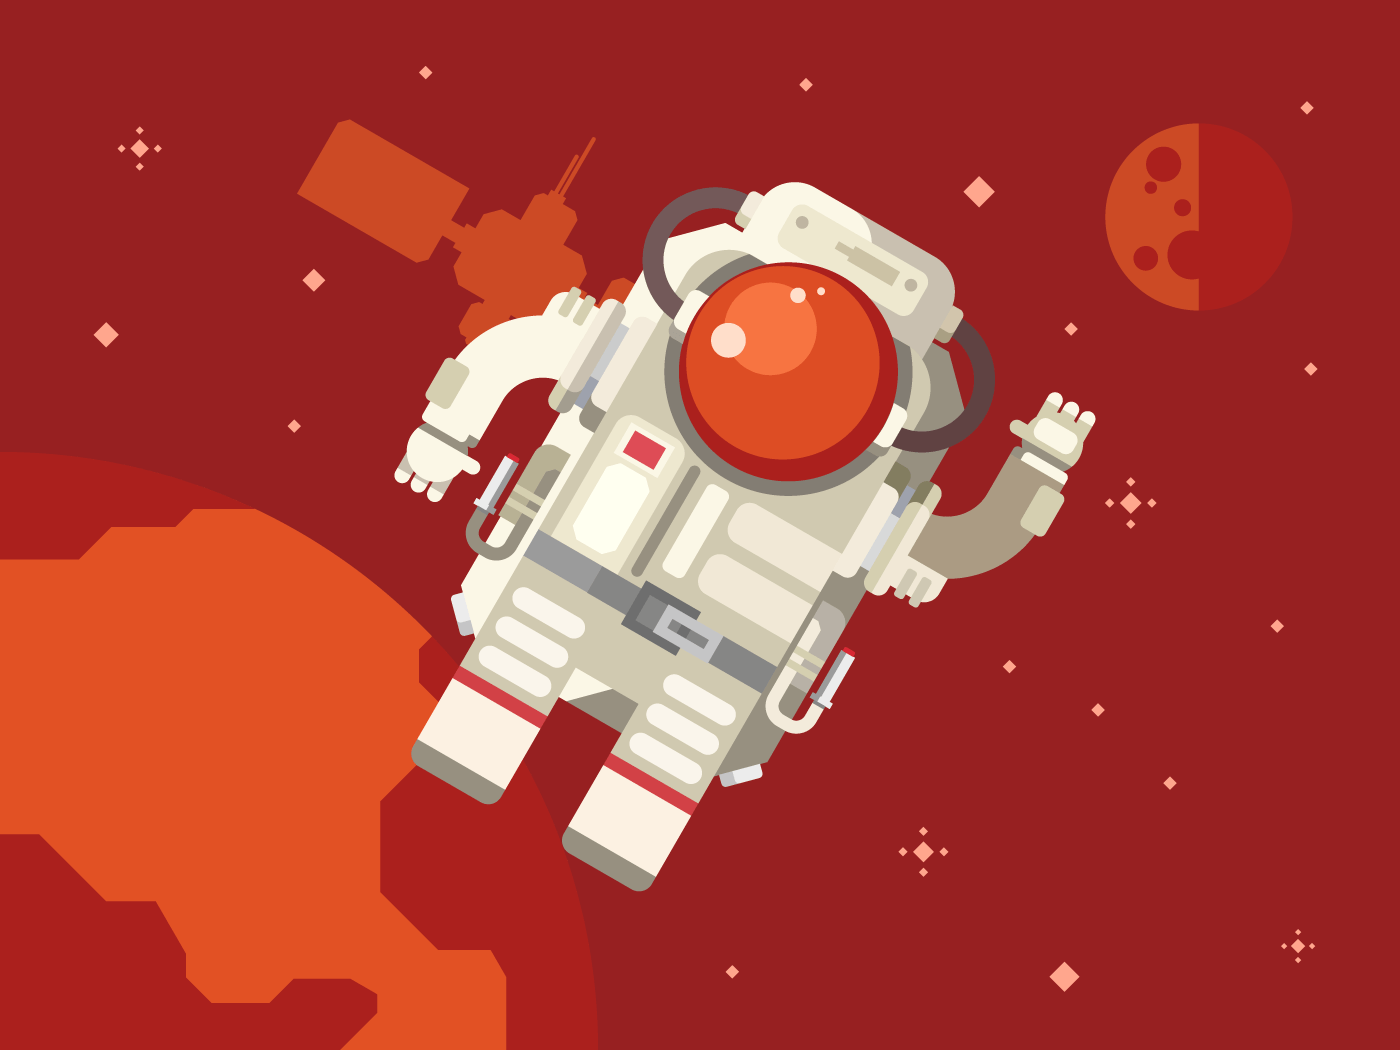 Astronaut in outer space flat illustration flat vector illustration red version